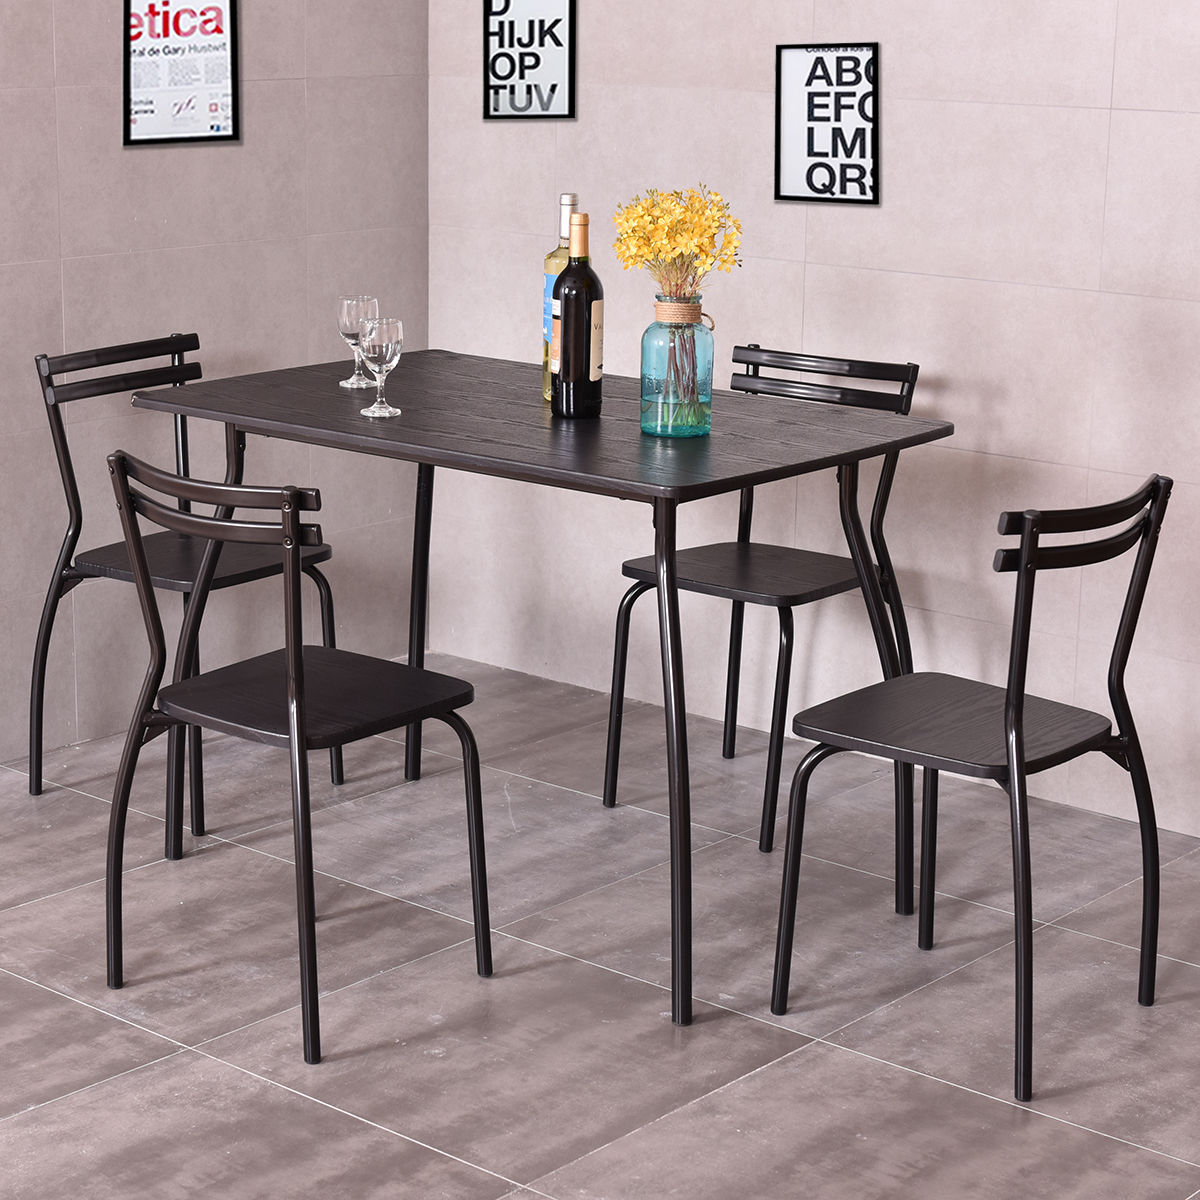 Costway 5 Piece Dining Room Set Table And 4 Chairs Home Kitchen Room Breakfast Furniture by Costway